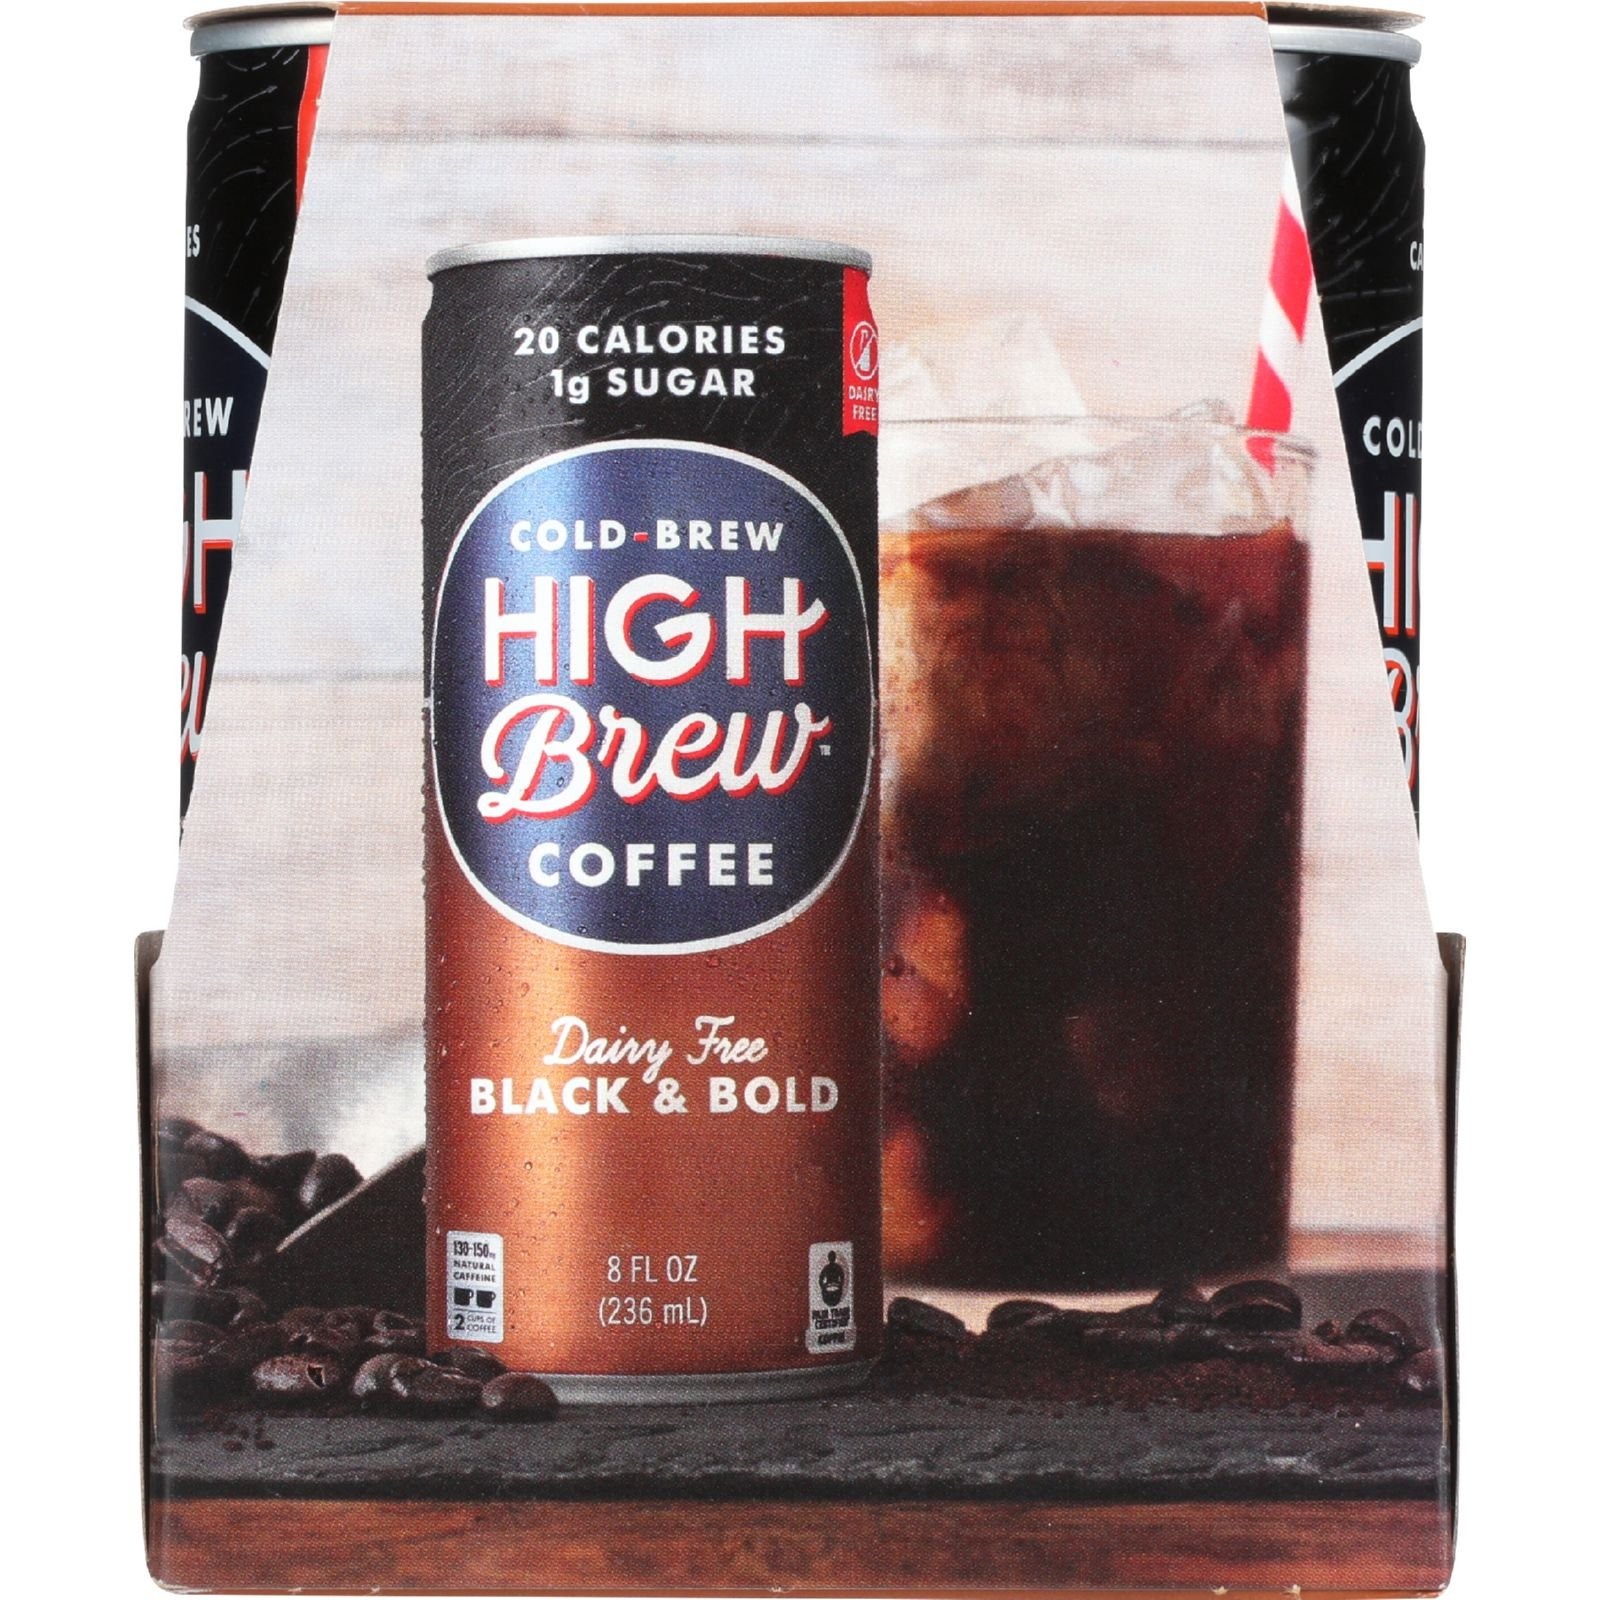 High Brew Coffee Coffee - Ready to Drink - Black and Bold - Dairy Free - 4/8 oz - case of 6 - 20 Calories - 1g Sugar